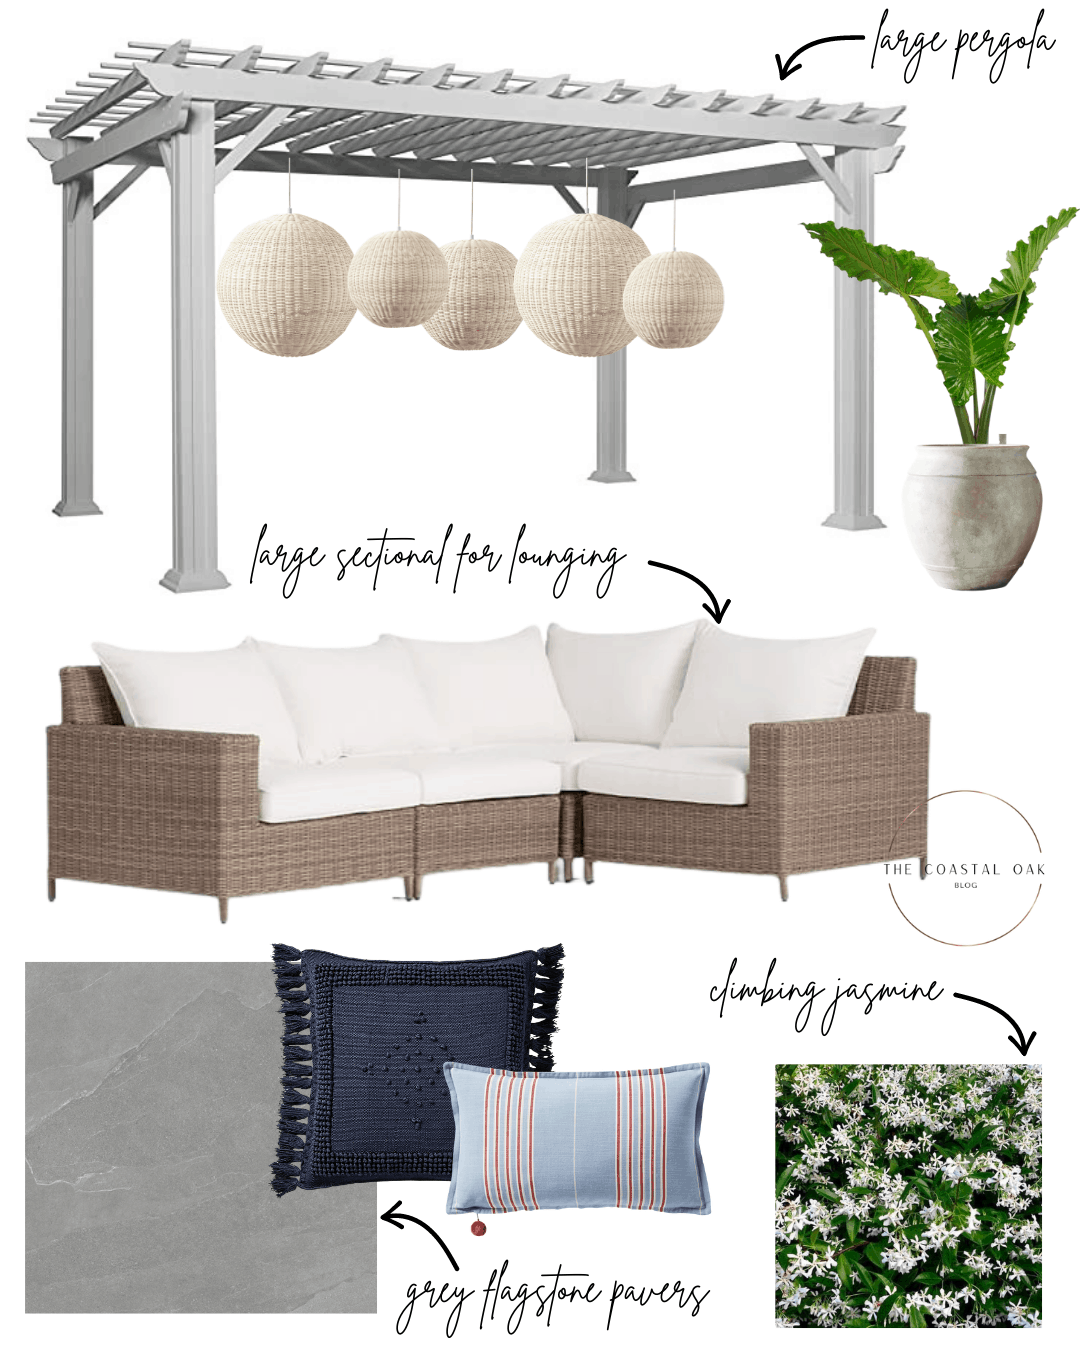 Outdoor makeover design plans with large pergola and flagstone.